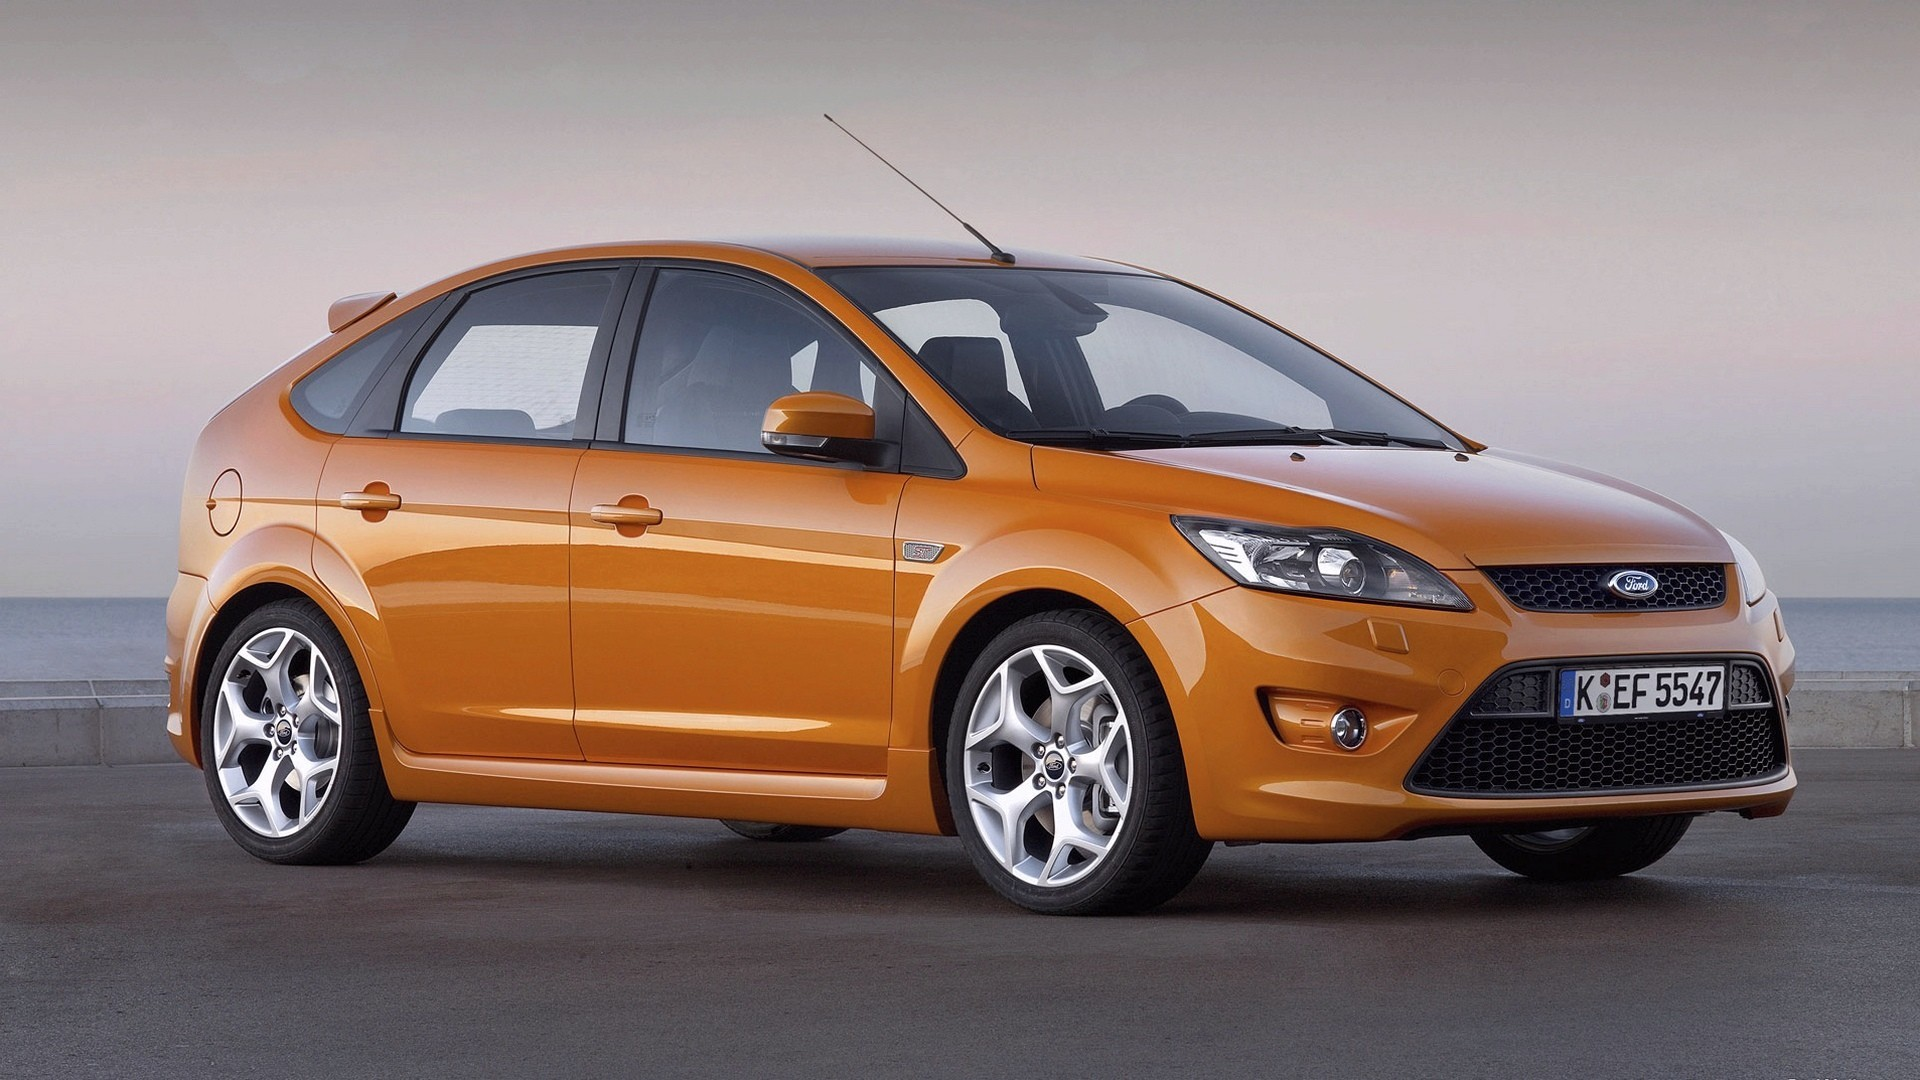 cars orange Ford ford HD Wallpaper